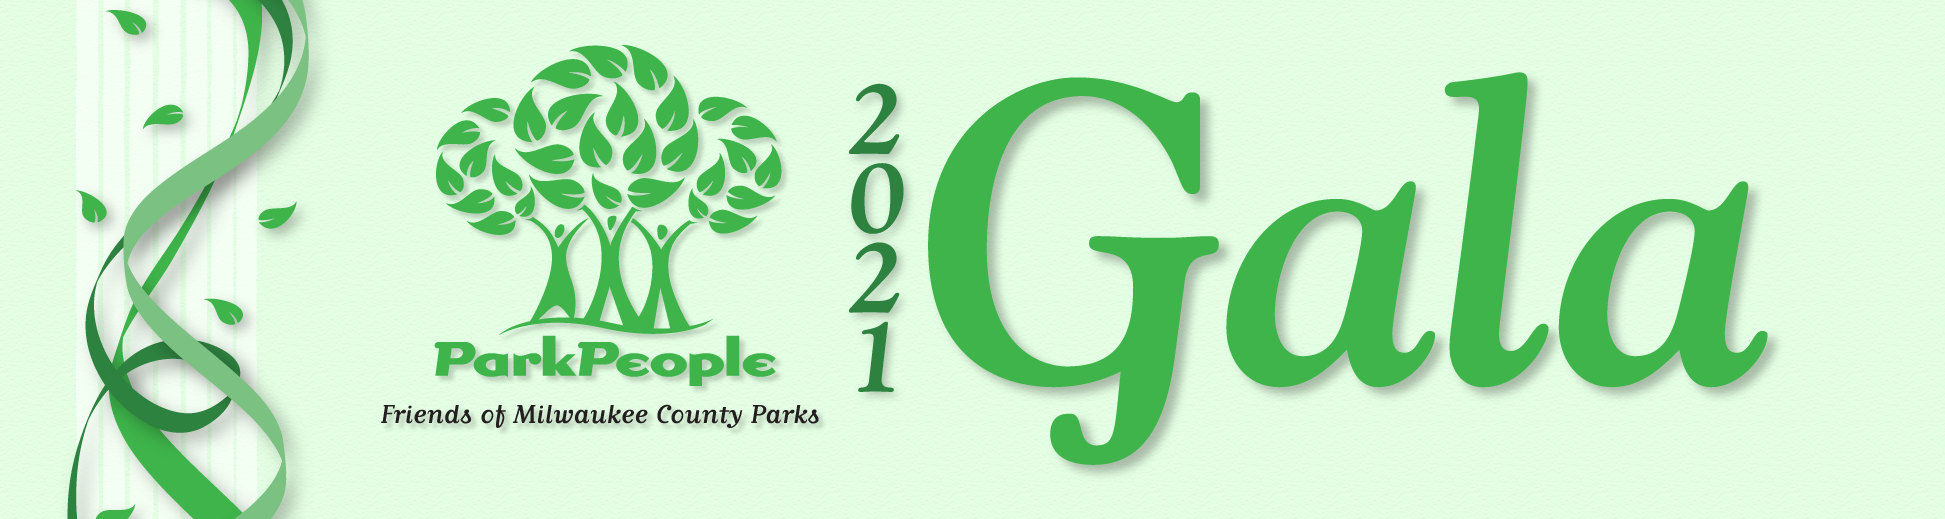 Graphic for The Park People 2021 Gala